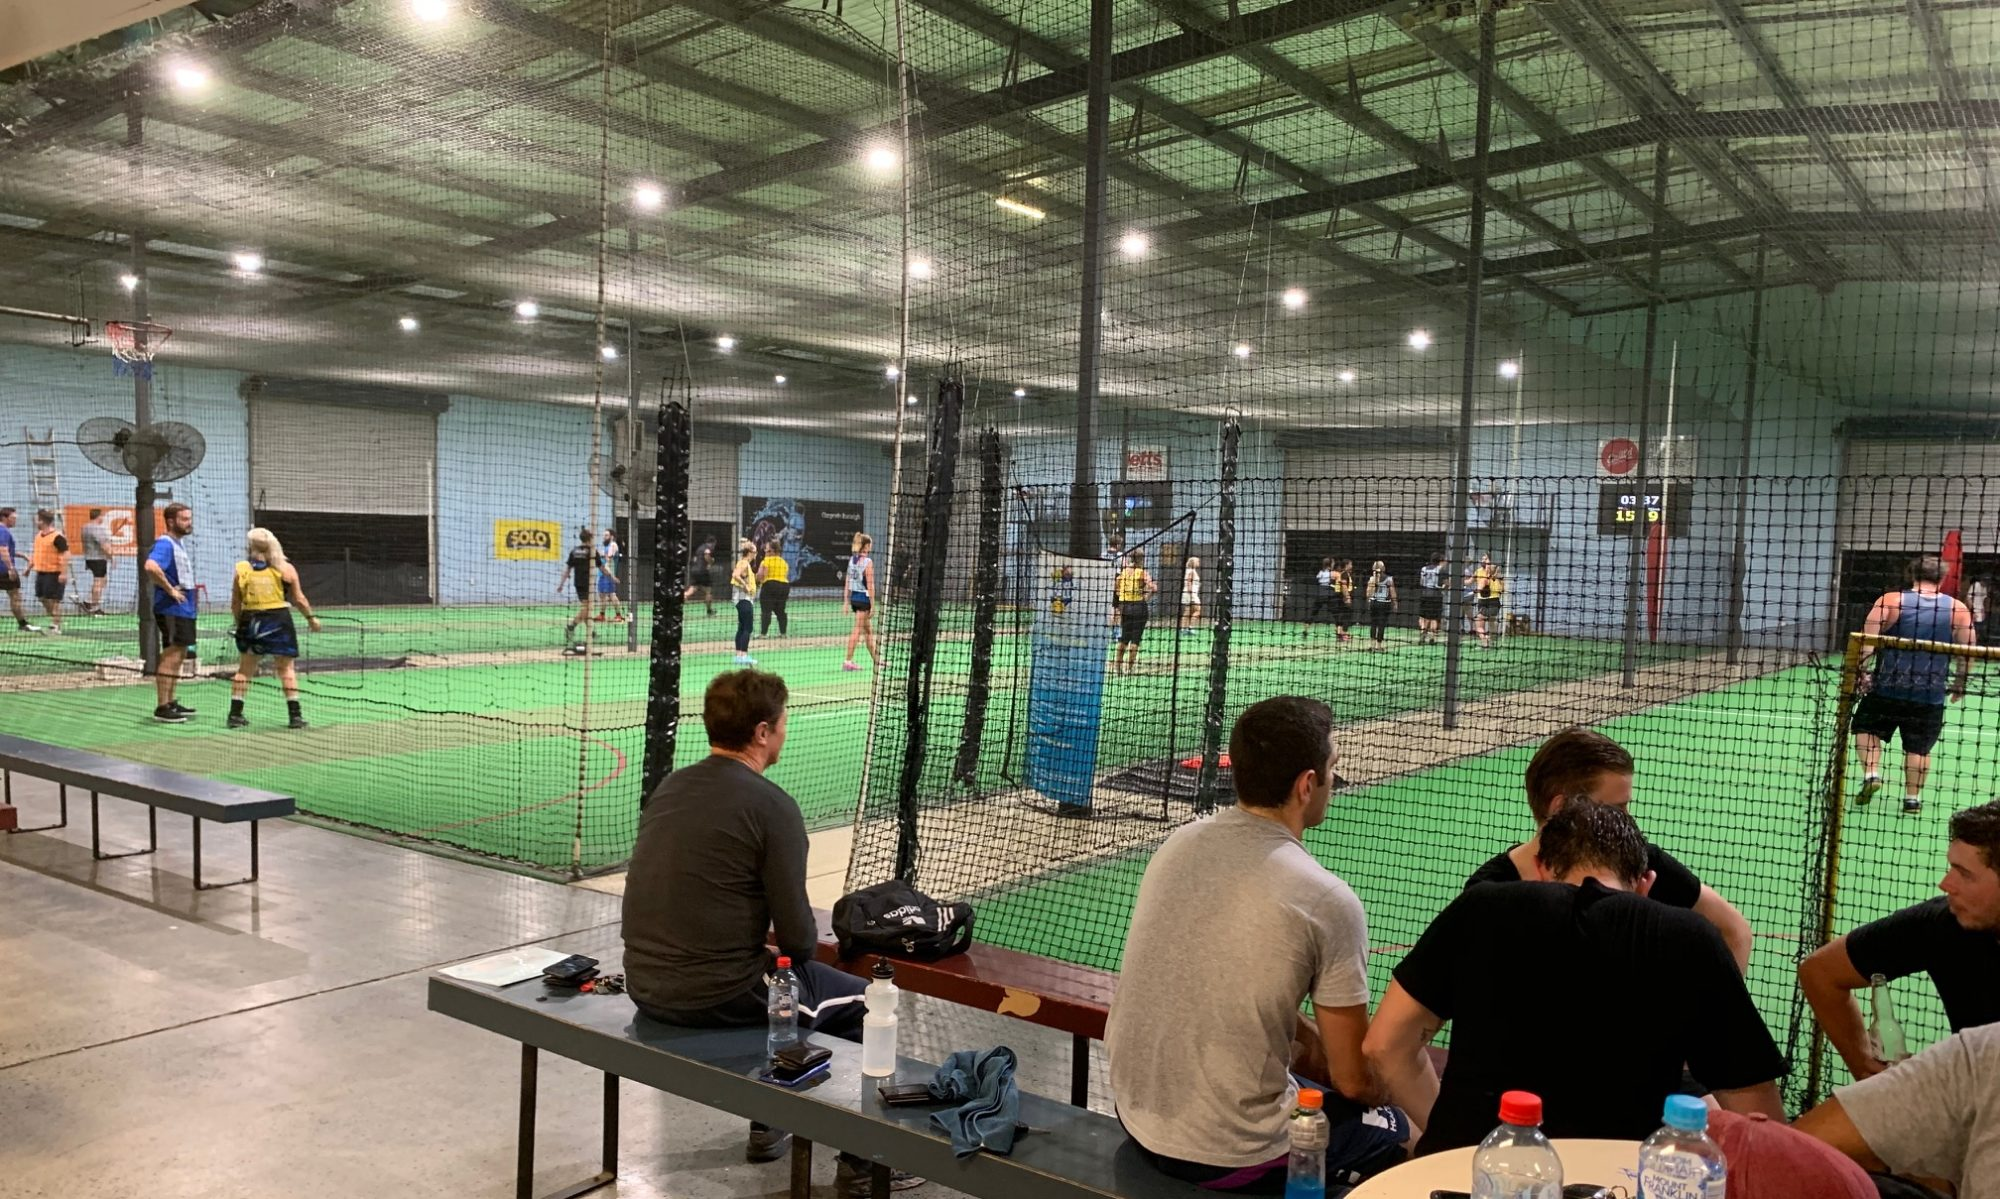 GOLD COAST INDOOR SPORT (BURLEIGH)